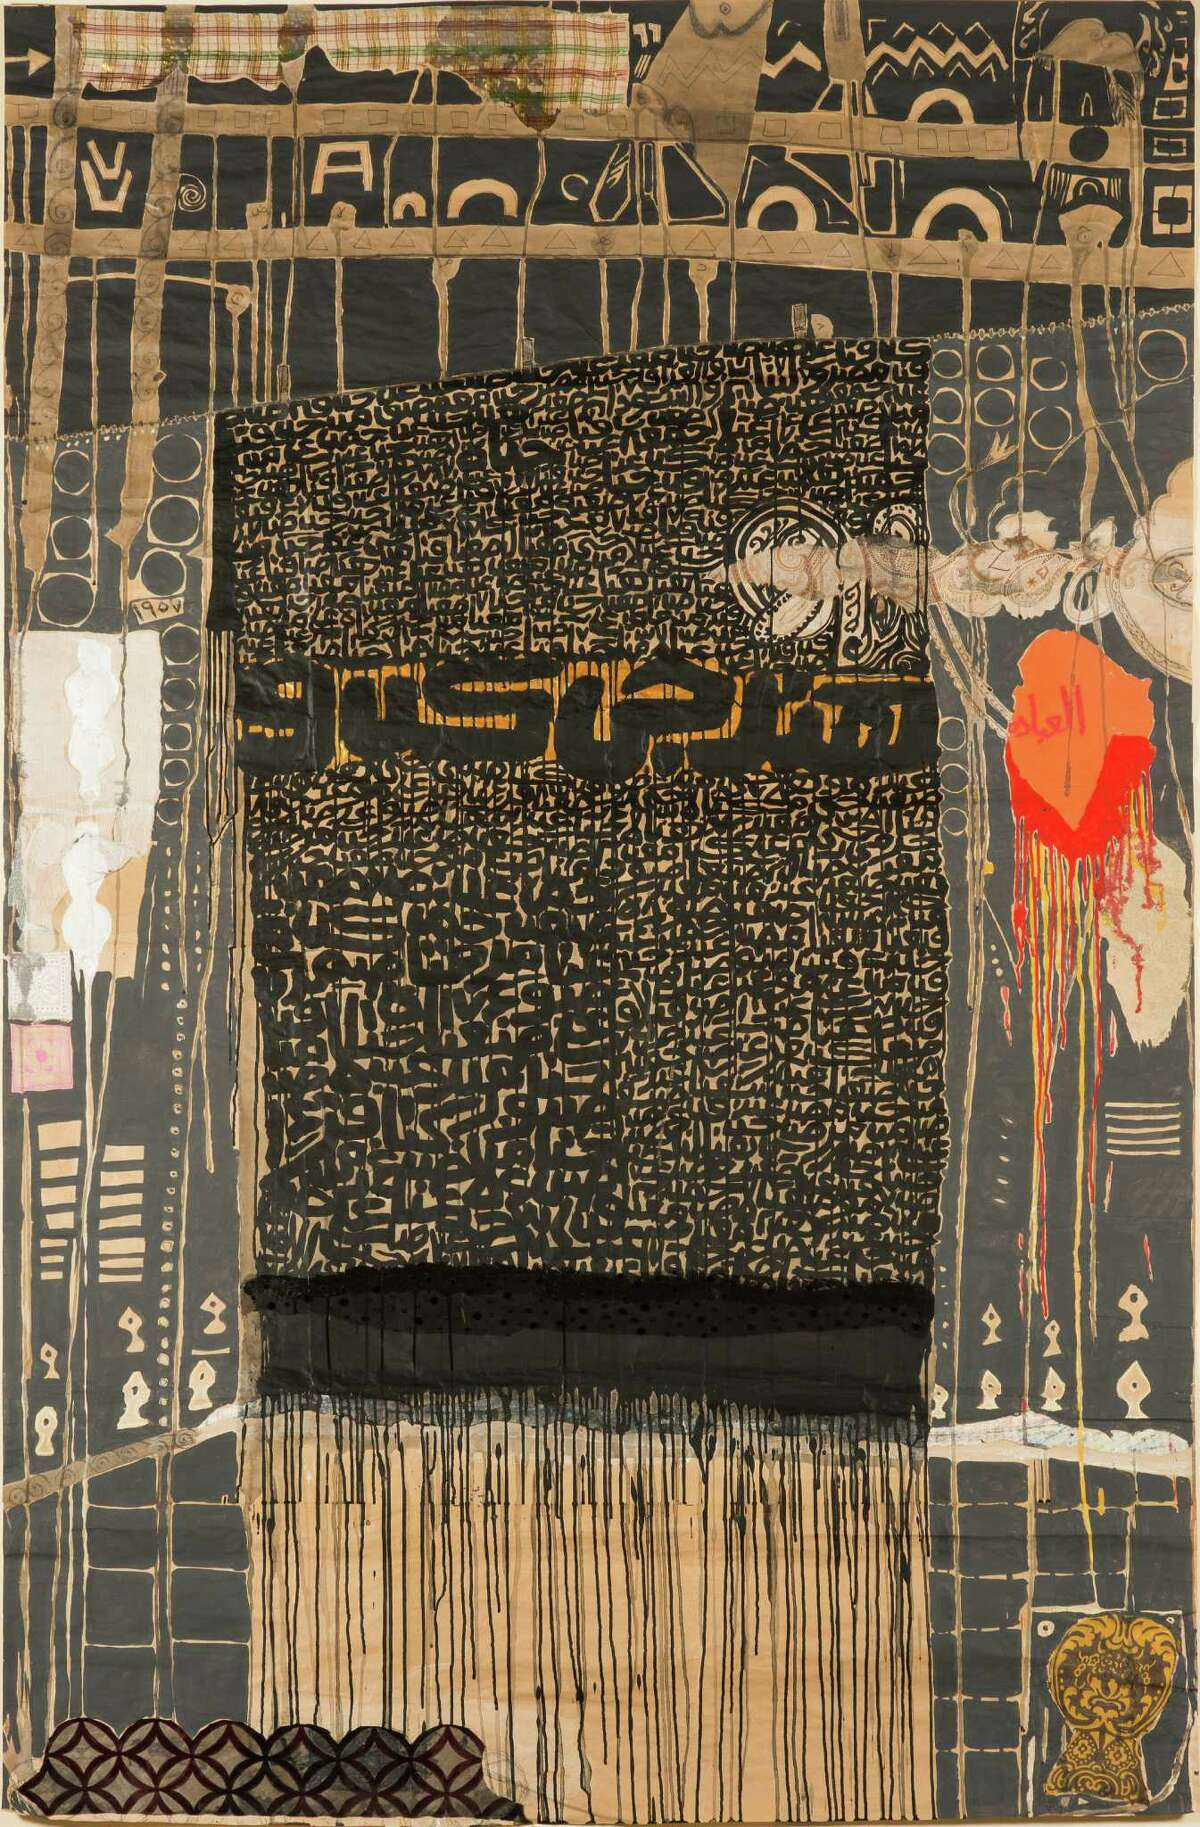 Fathi Hassan, Carpet, 2013, mixed media on paper. c. Fathi Hassan, courtesy of Rose Issa Projects. Photo by Arthur Evans.